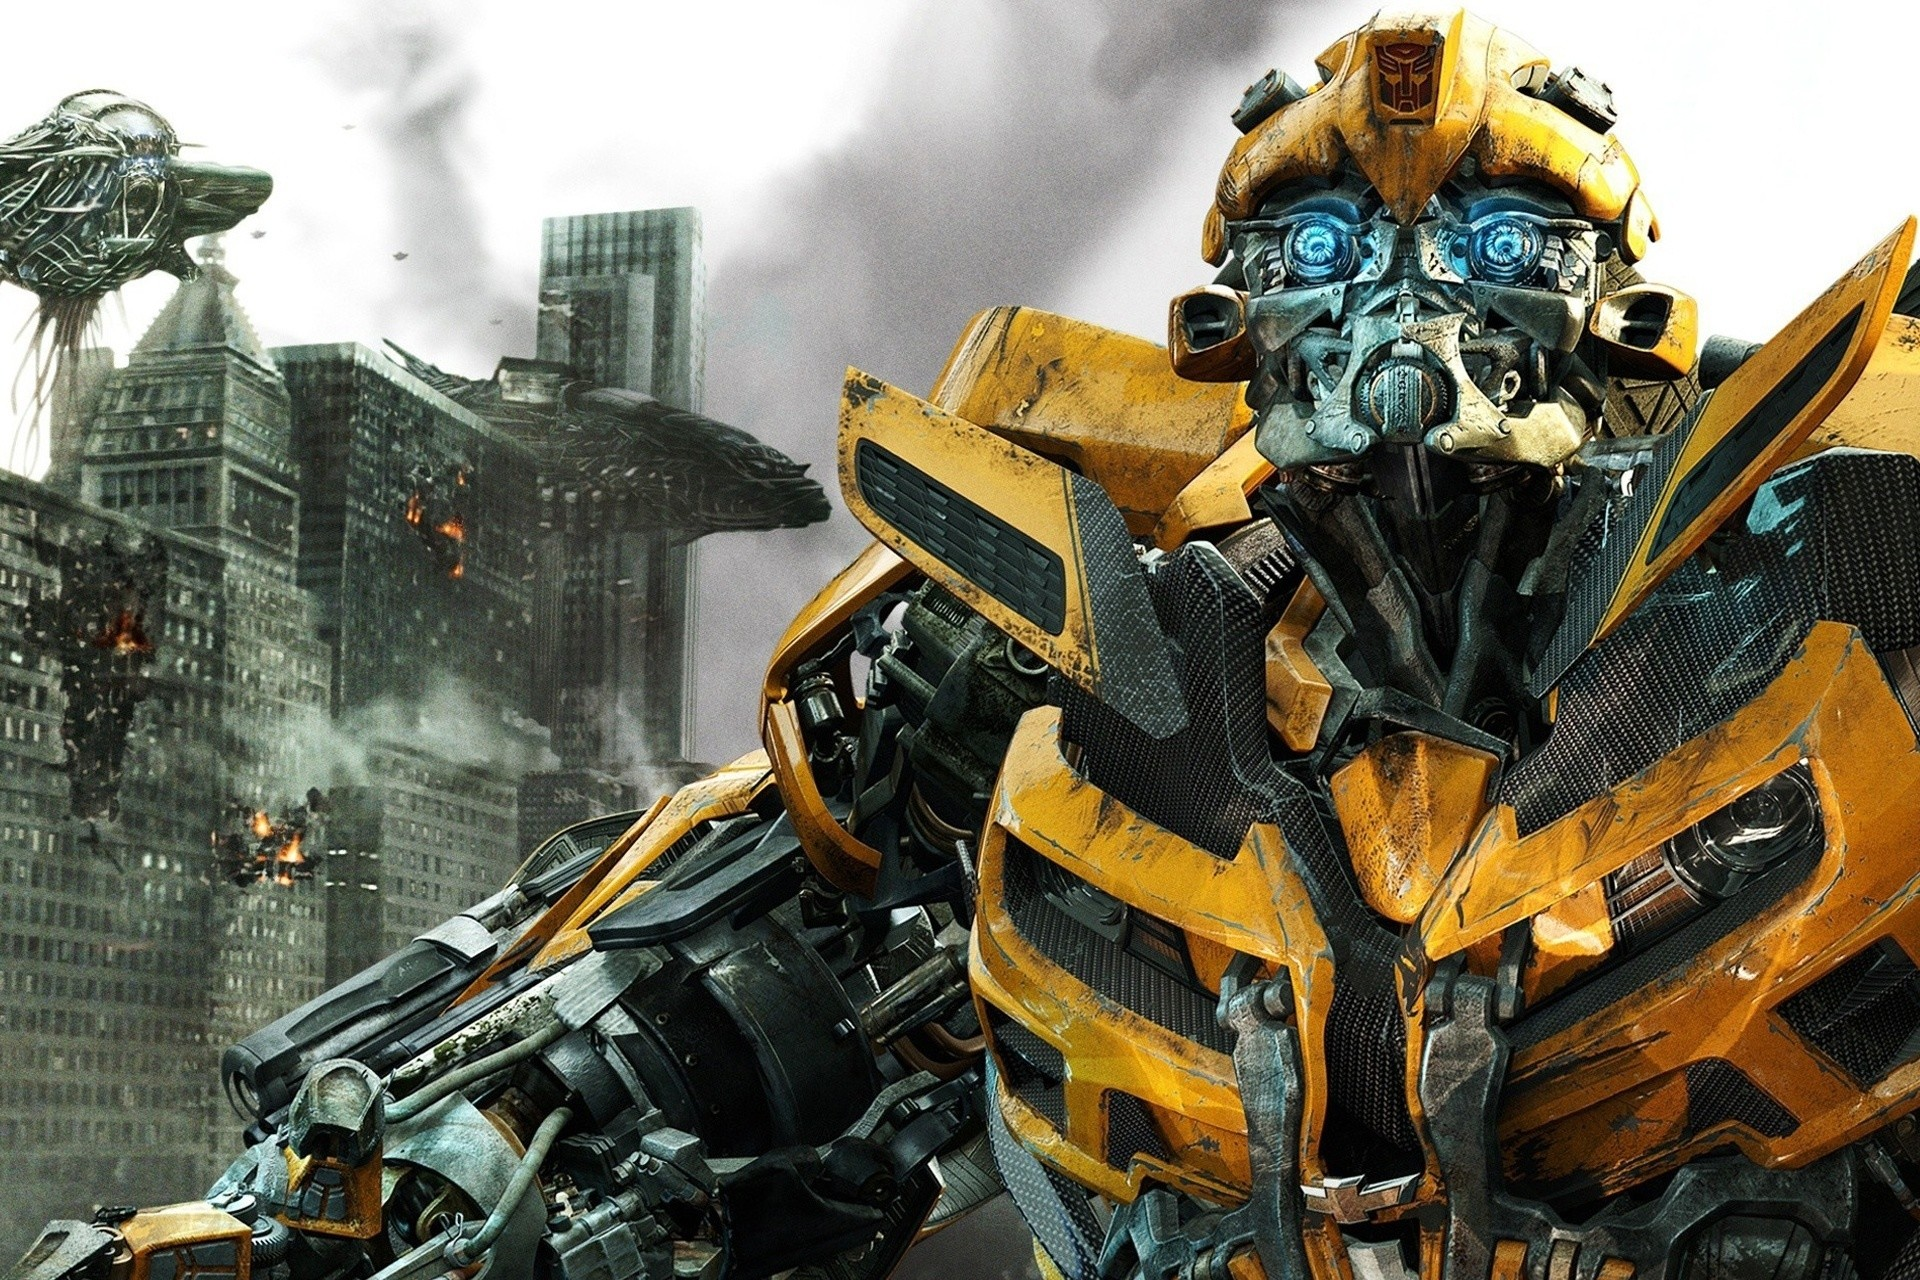 1920x1280 Movie Transformers Bumblebee Rise Of Galvatron Wallpaper HD